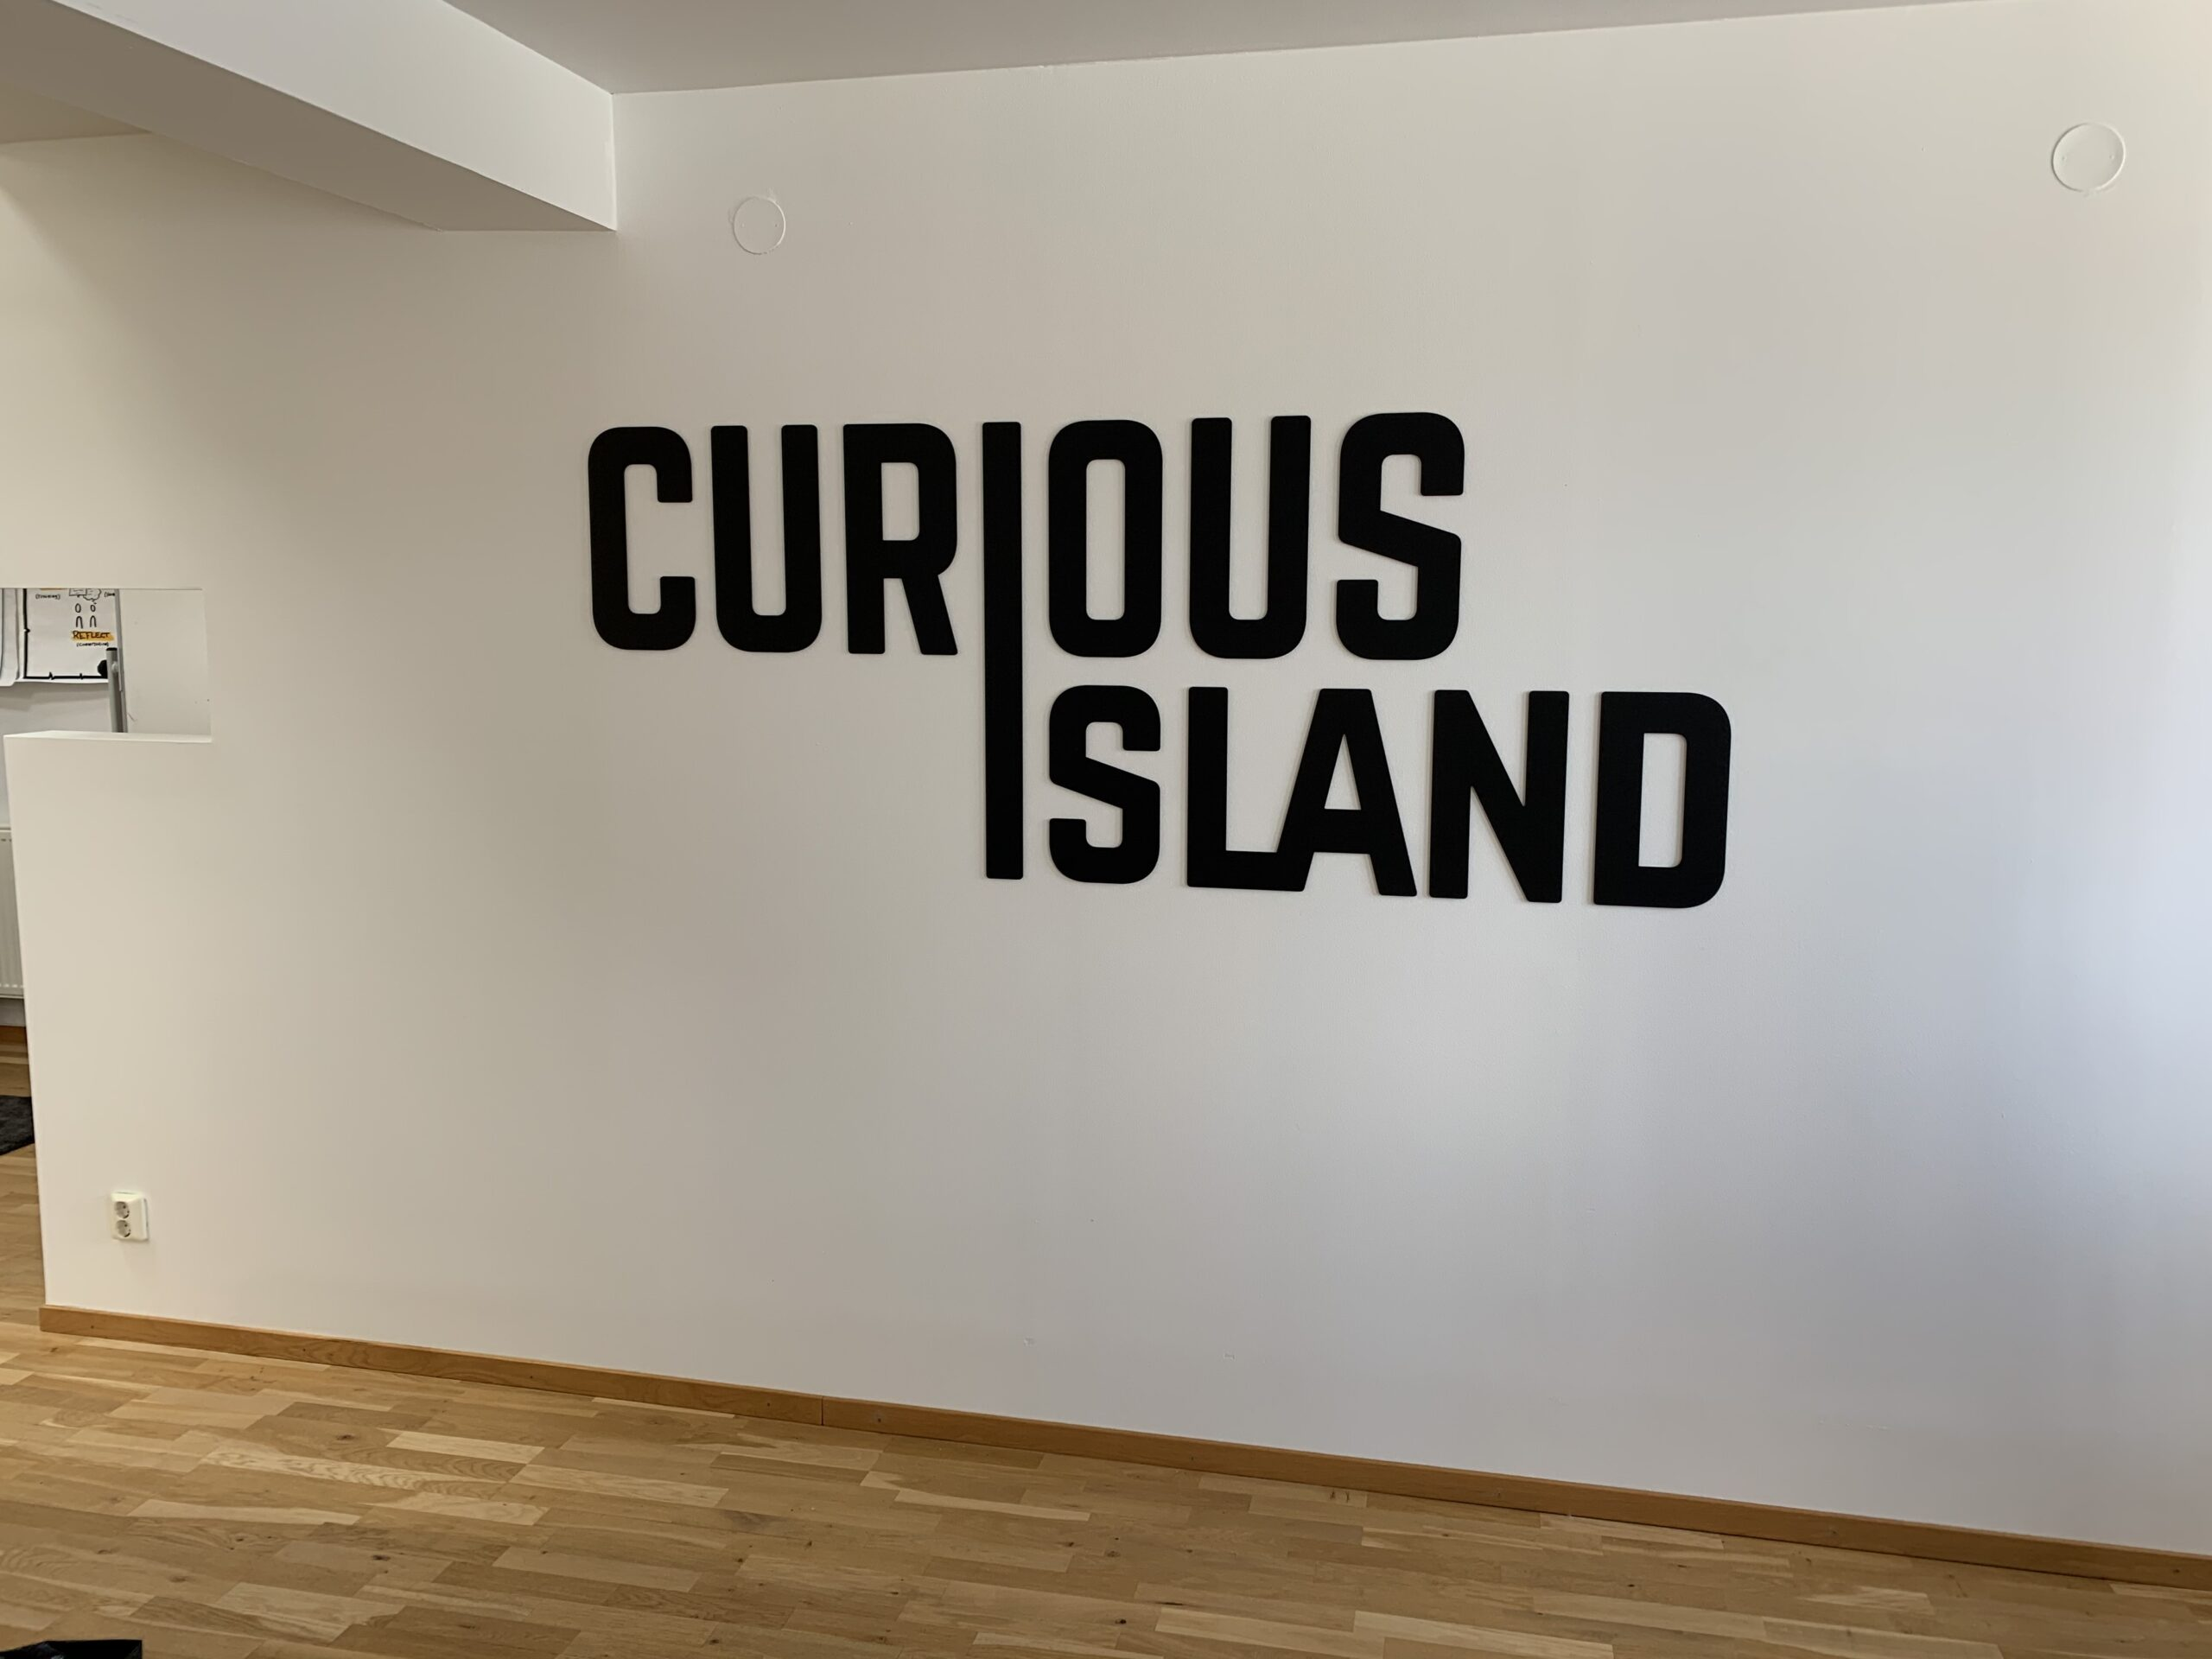 Permalink to: Curious Island DNA